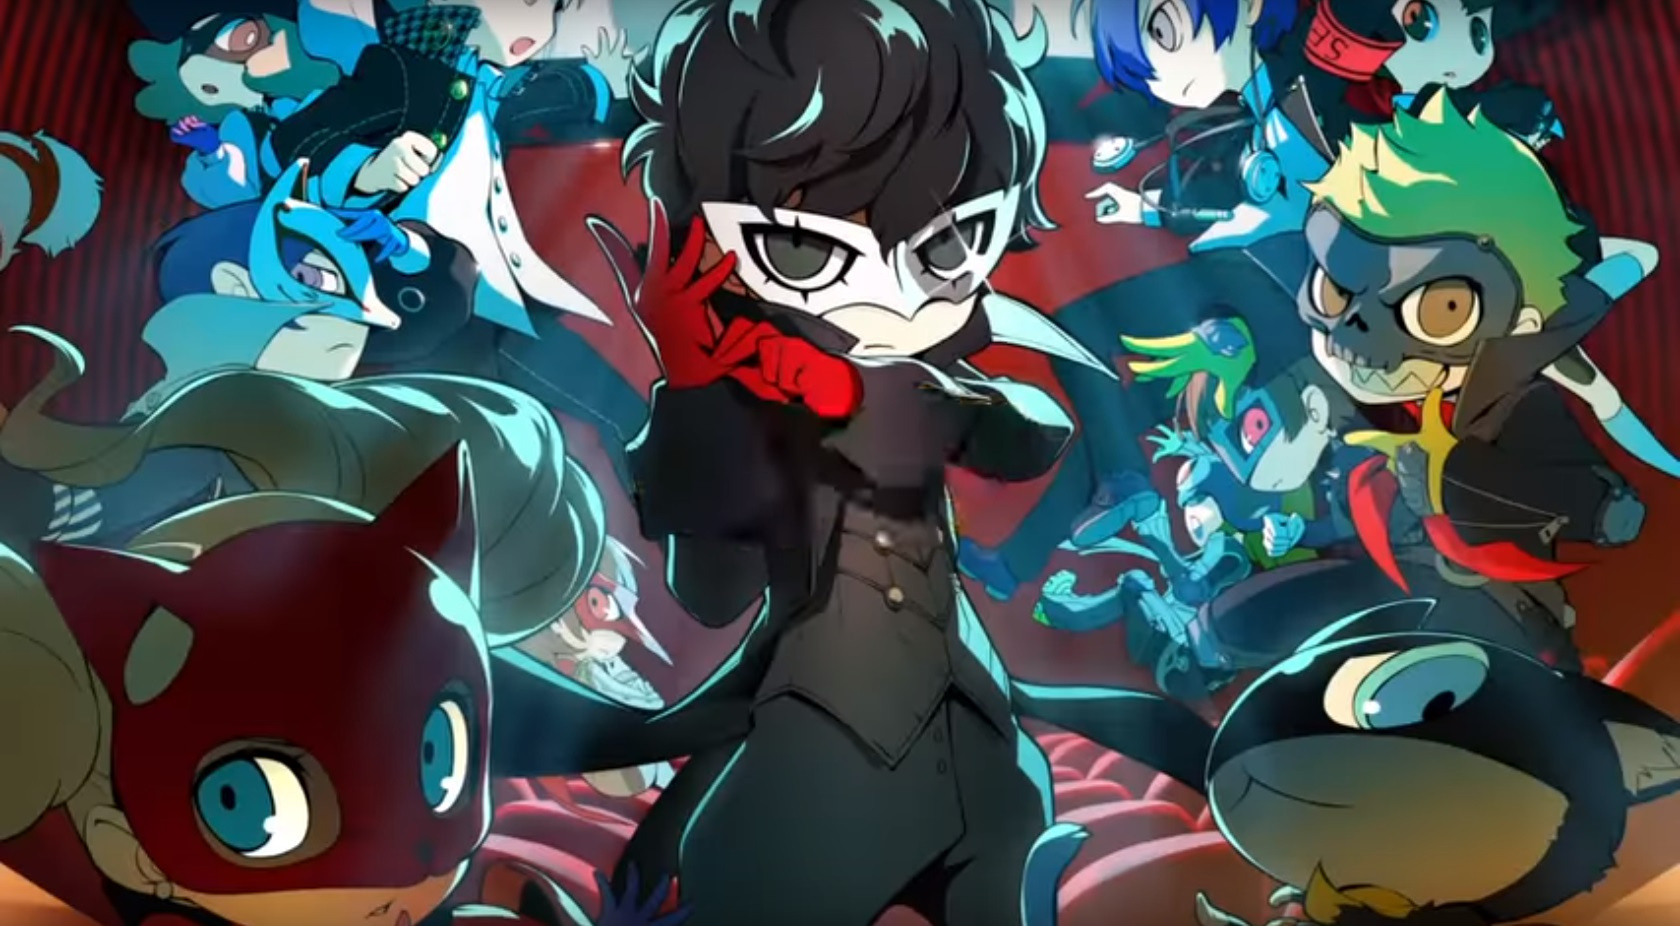 Persona Q2: New Cinema Labyrinth Rated By The Australian Classification Board